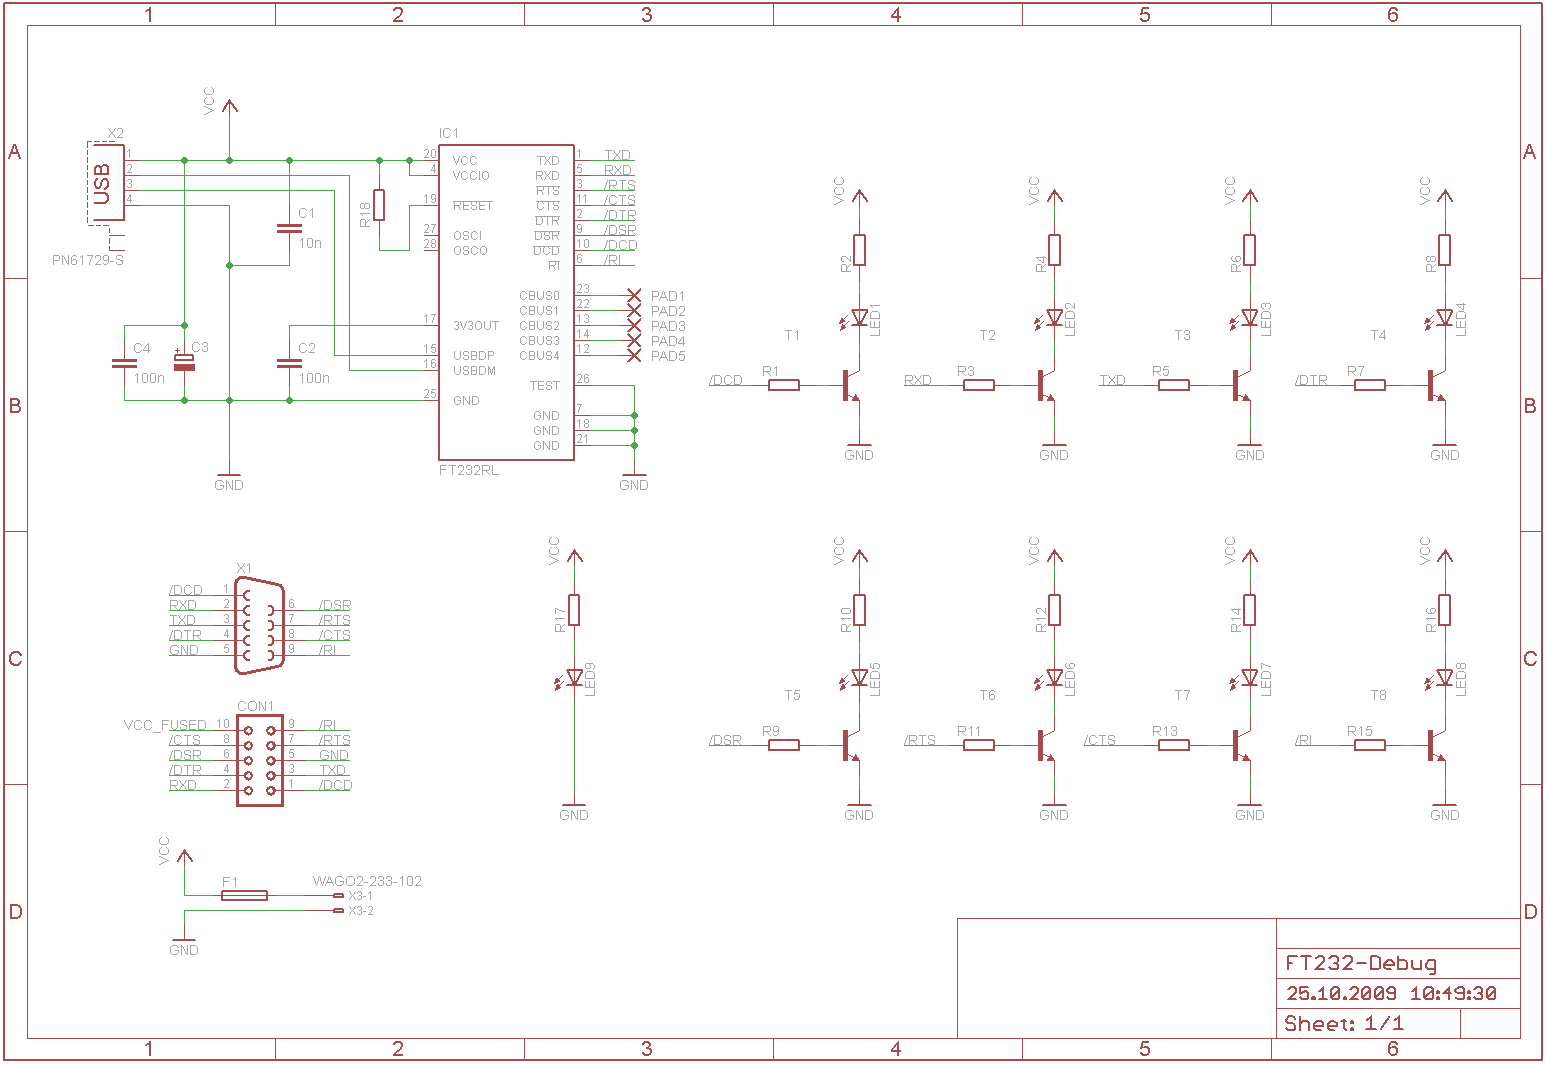 005245 moreover Free Wire Diagram Software also Index together with Eplanschaltplan also Udscad. on eplan electric p8